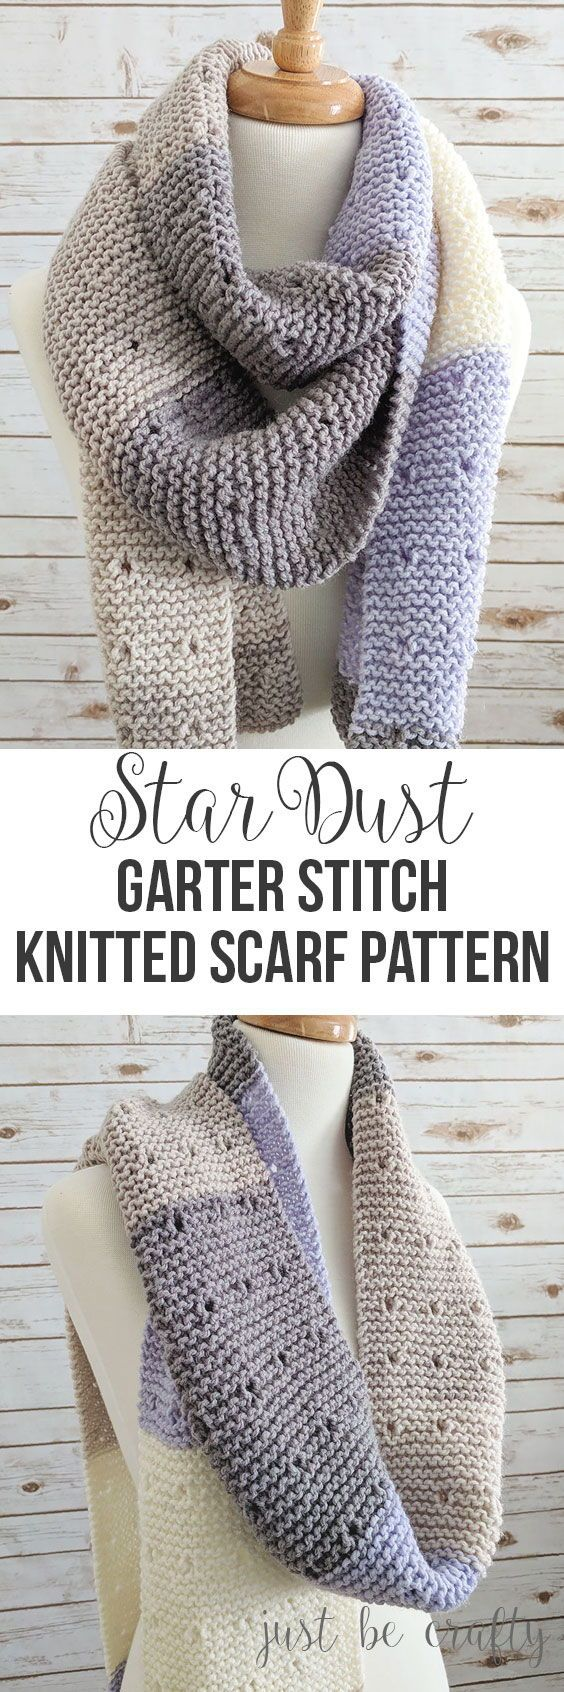 Star Dust Knitted Scarf Pattern | Free Knitting Pattern - super easy ...